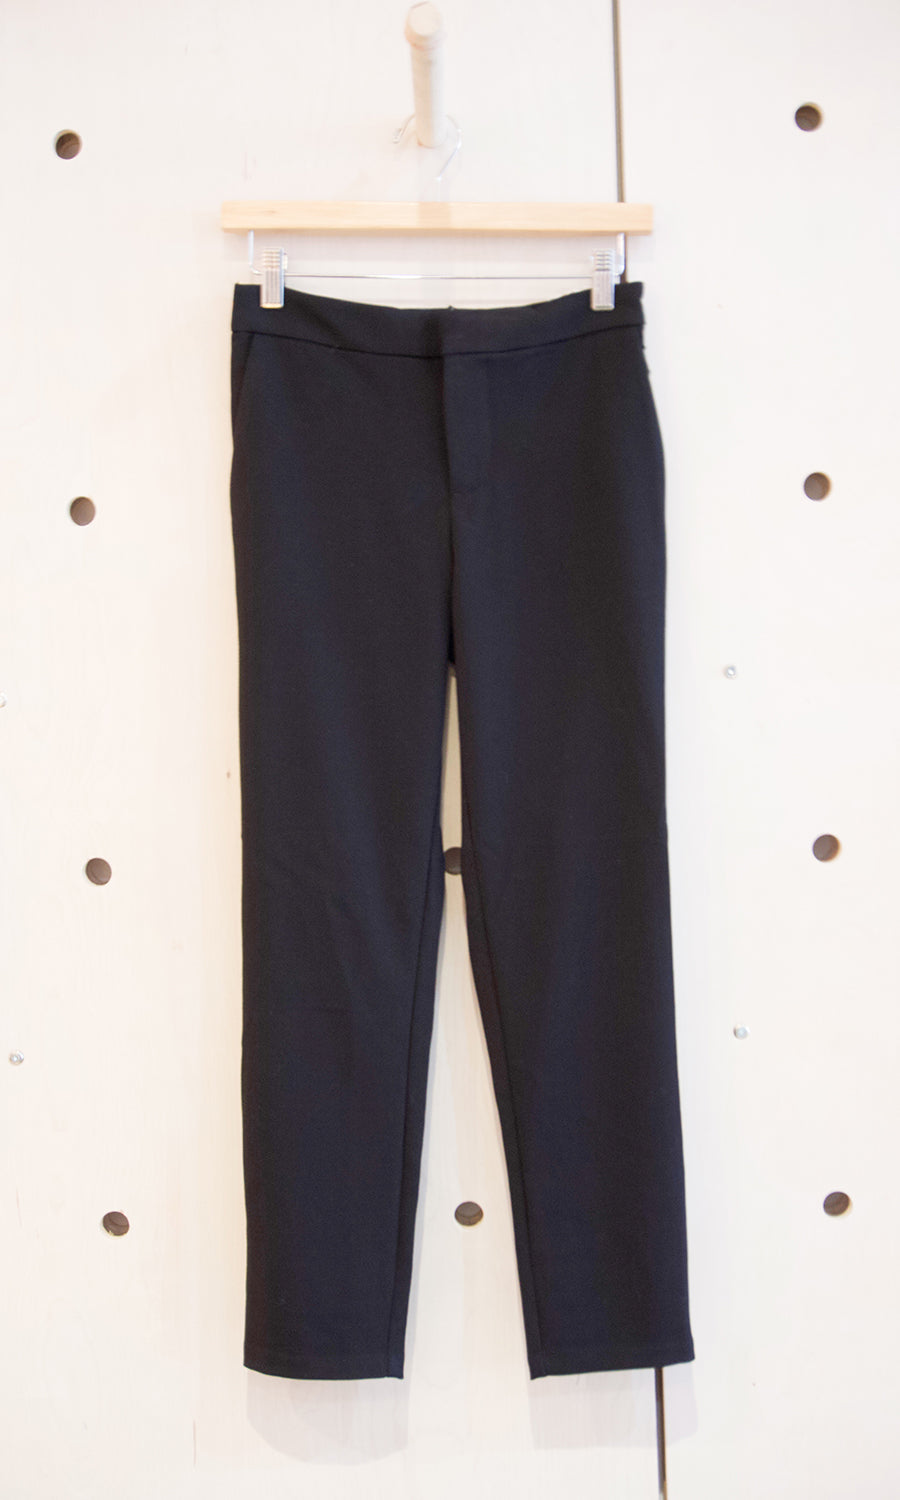 Kut From The Kloth Edith Pant